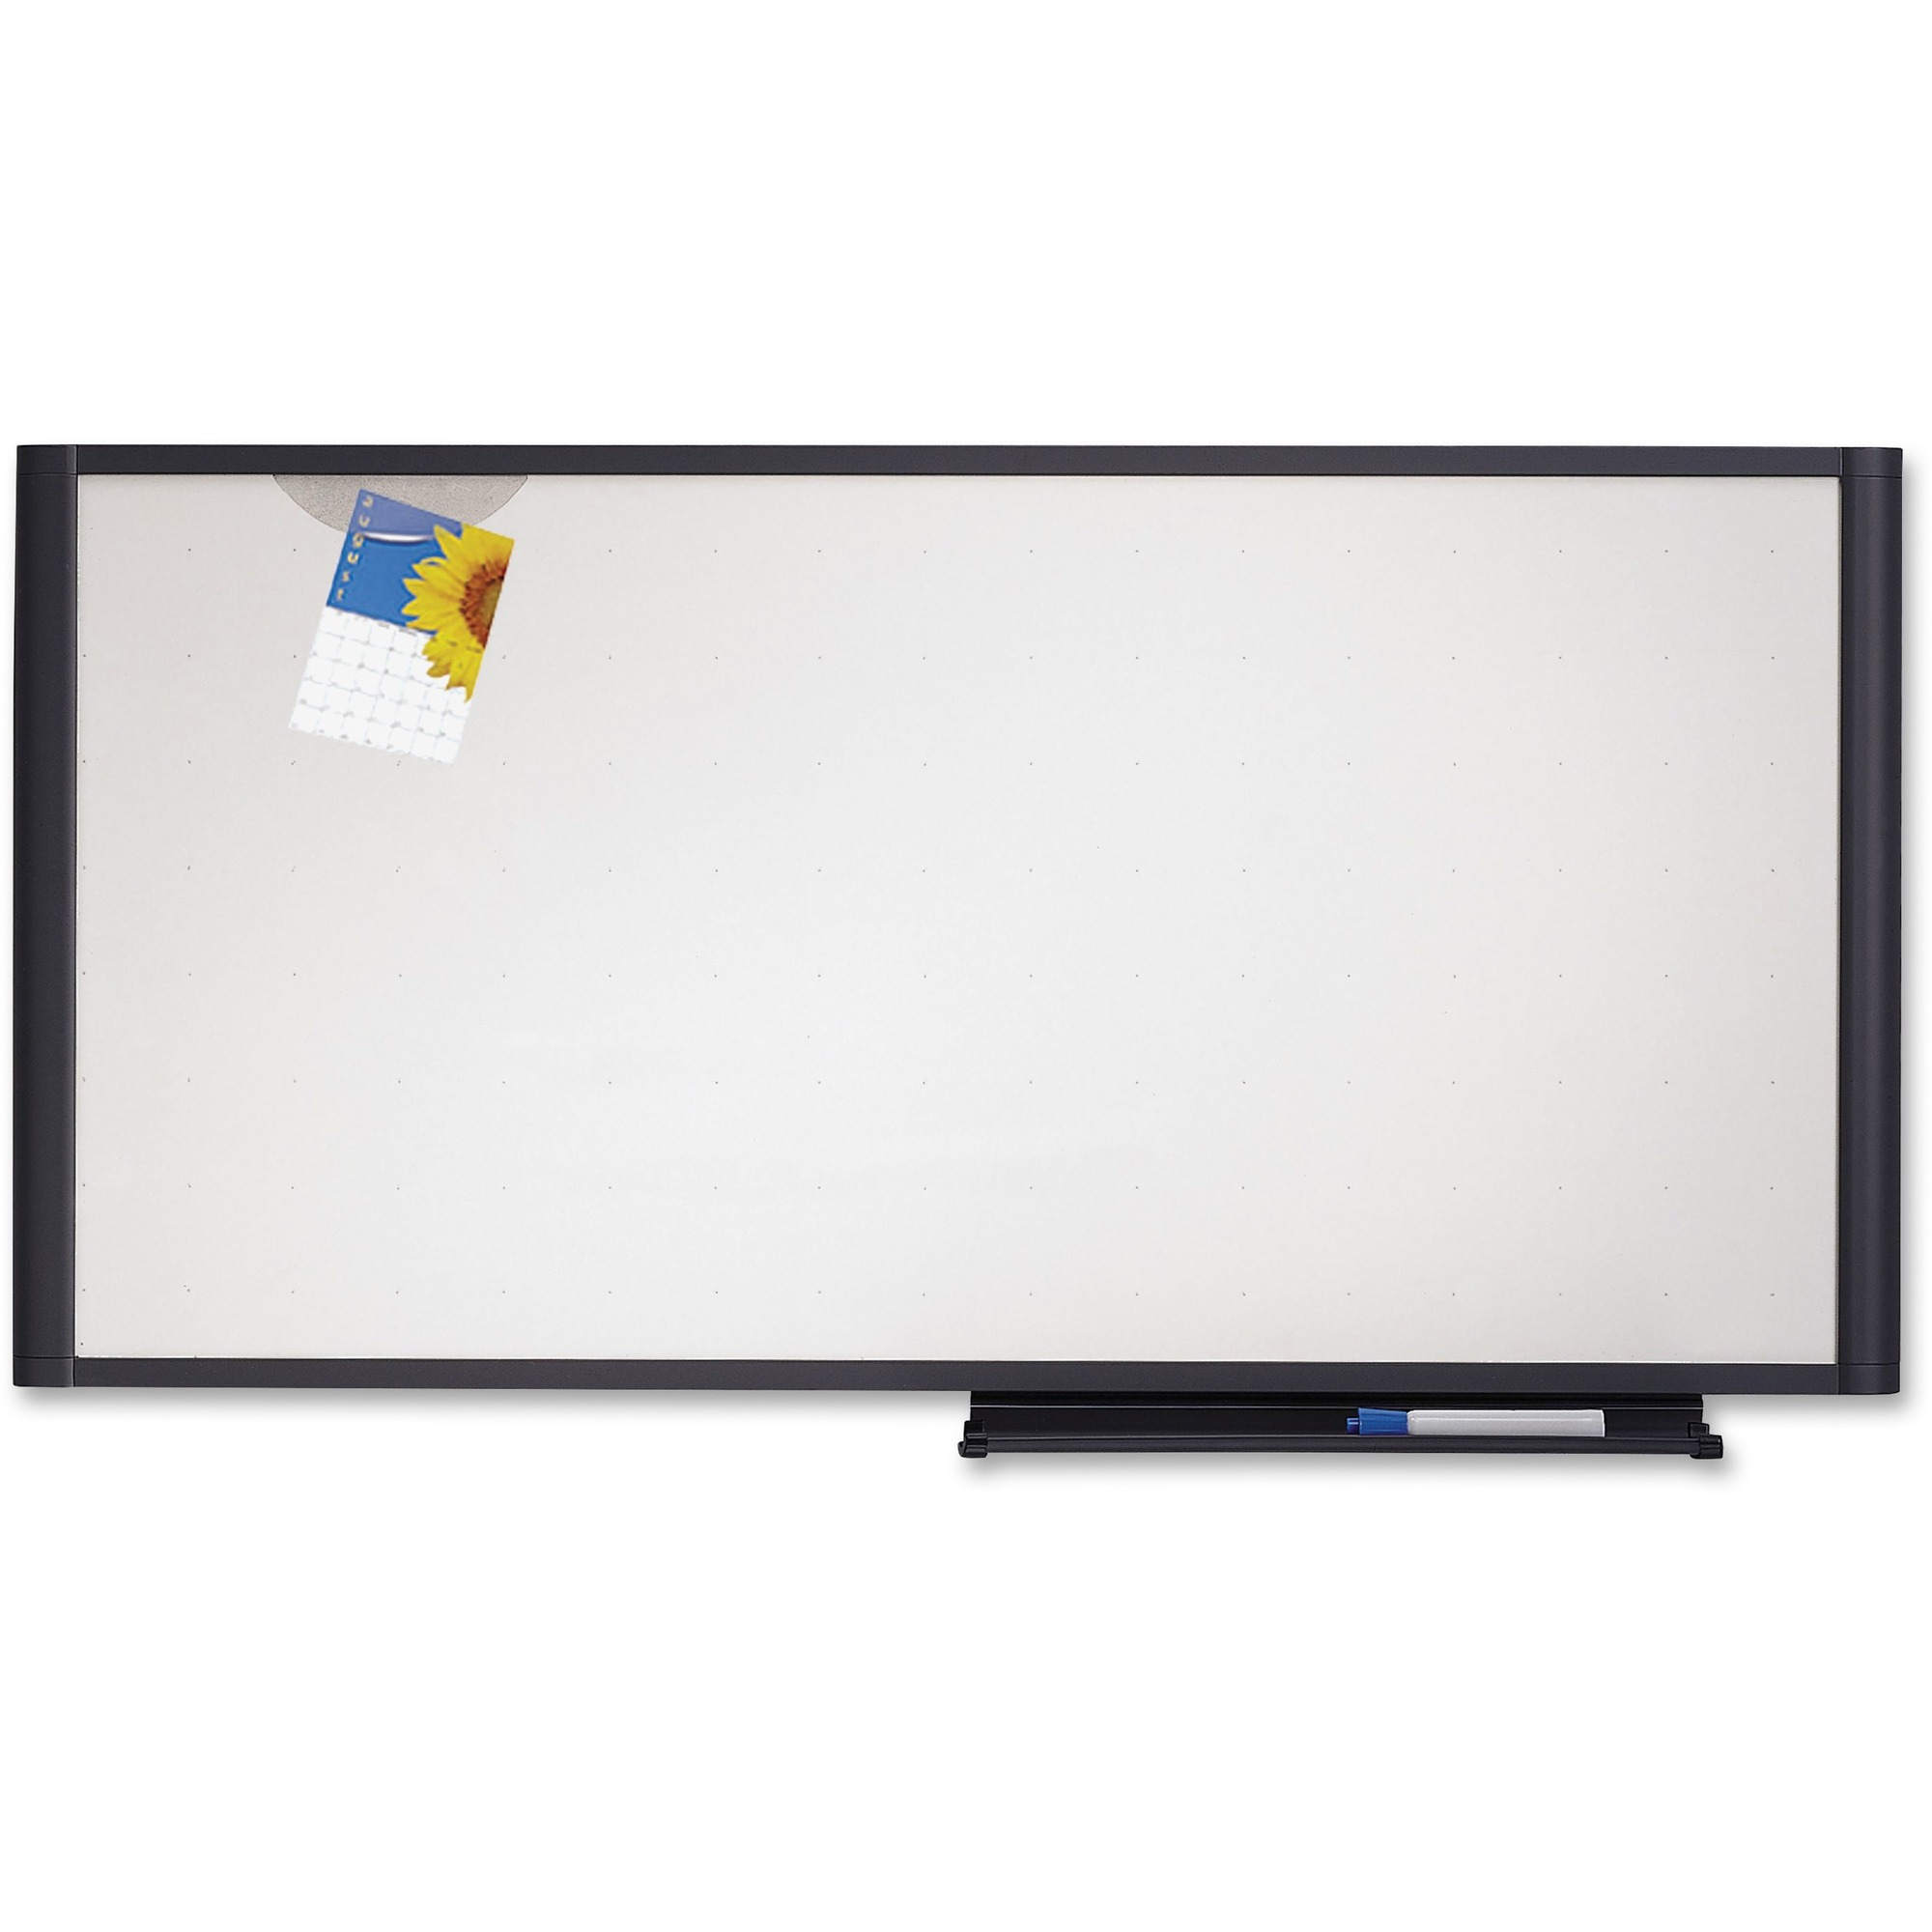 Acco Brands Corporation Quartet® Prestige® Total Erase®cubicle Whiteboard, 48 X 18, Graphite Frame, Writing Grid - 48 (4 Ft) Width X 18 (1.5 Ft) Height - White Surface - Graphite Frame - Horizontal - 1 / Each